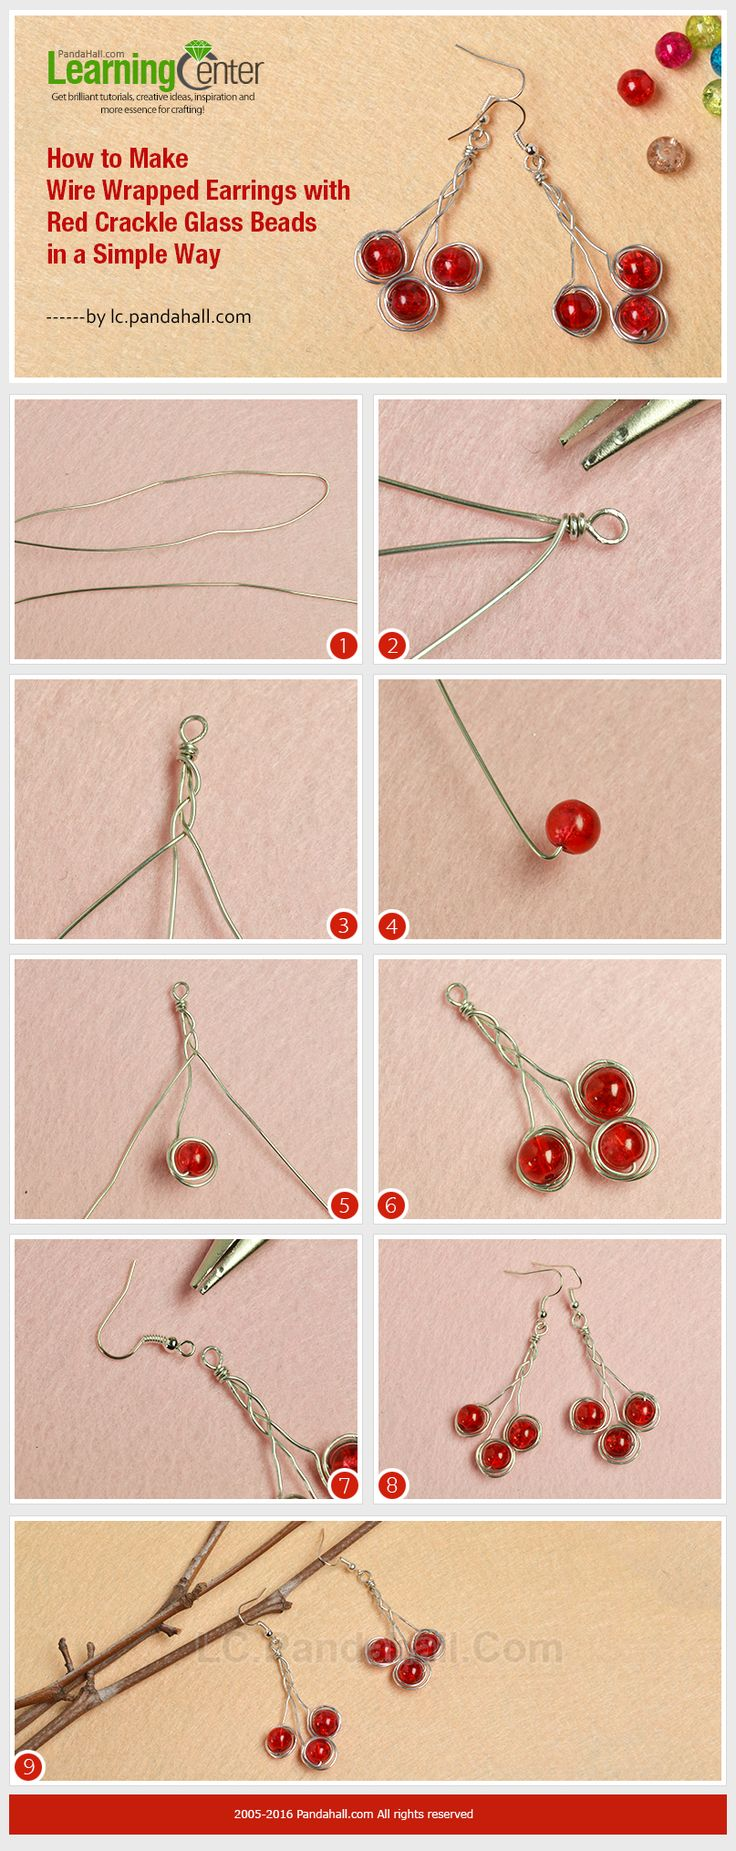 How to Make Wire Wrapped Earrings with Red Crackle Glass Beads in a Simple Way from LC.Pandahall.com